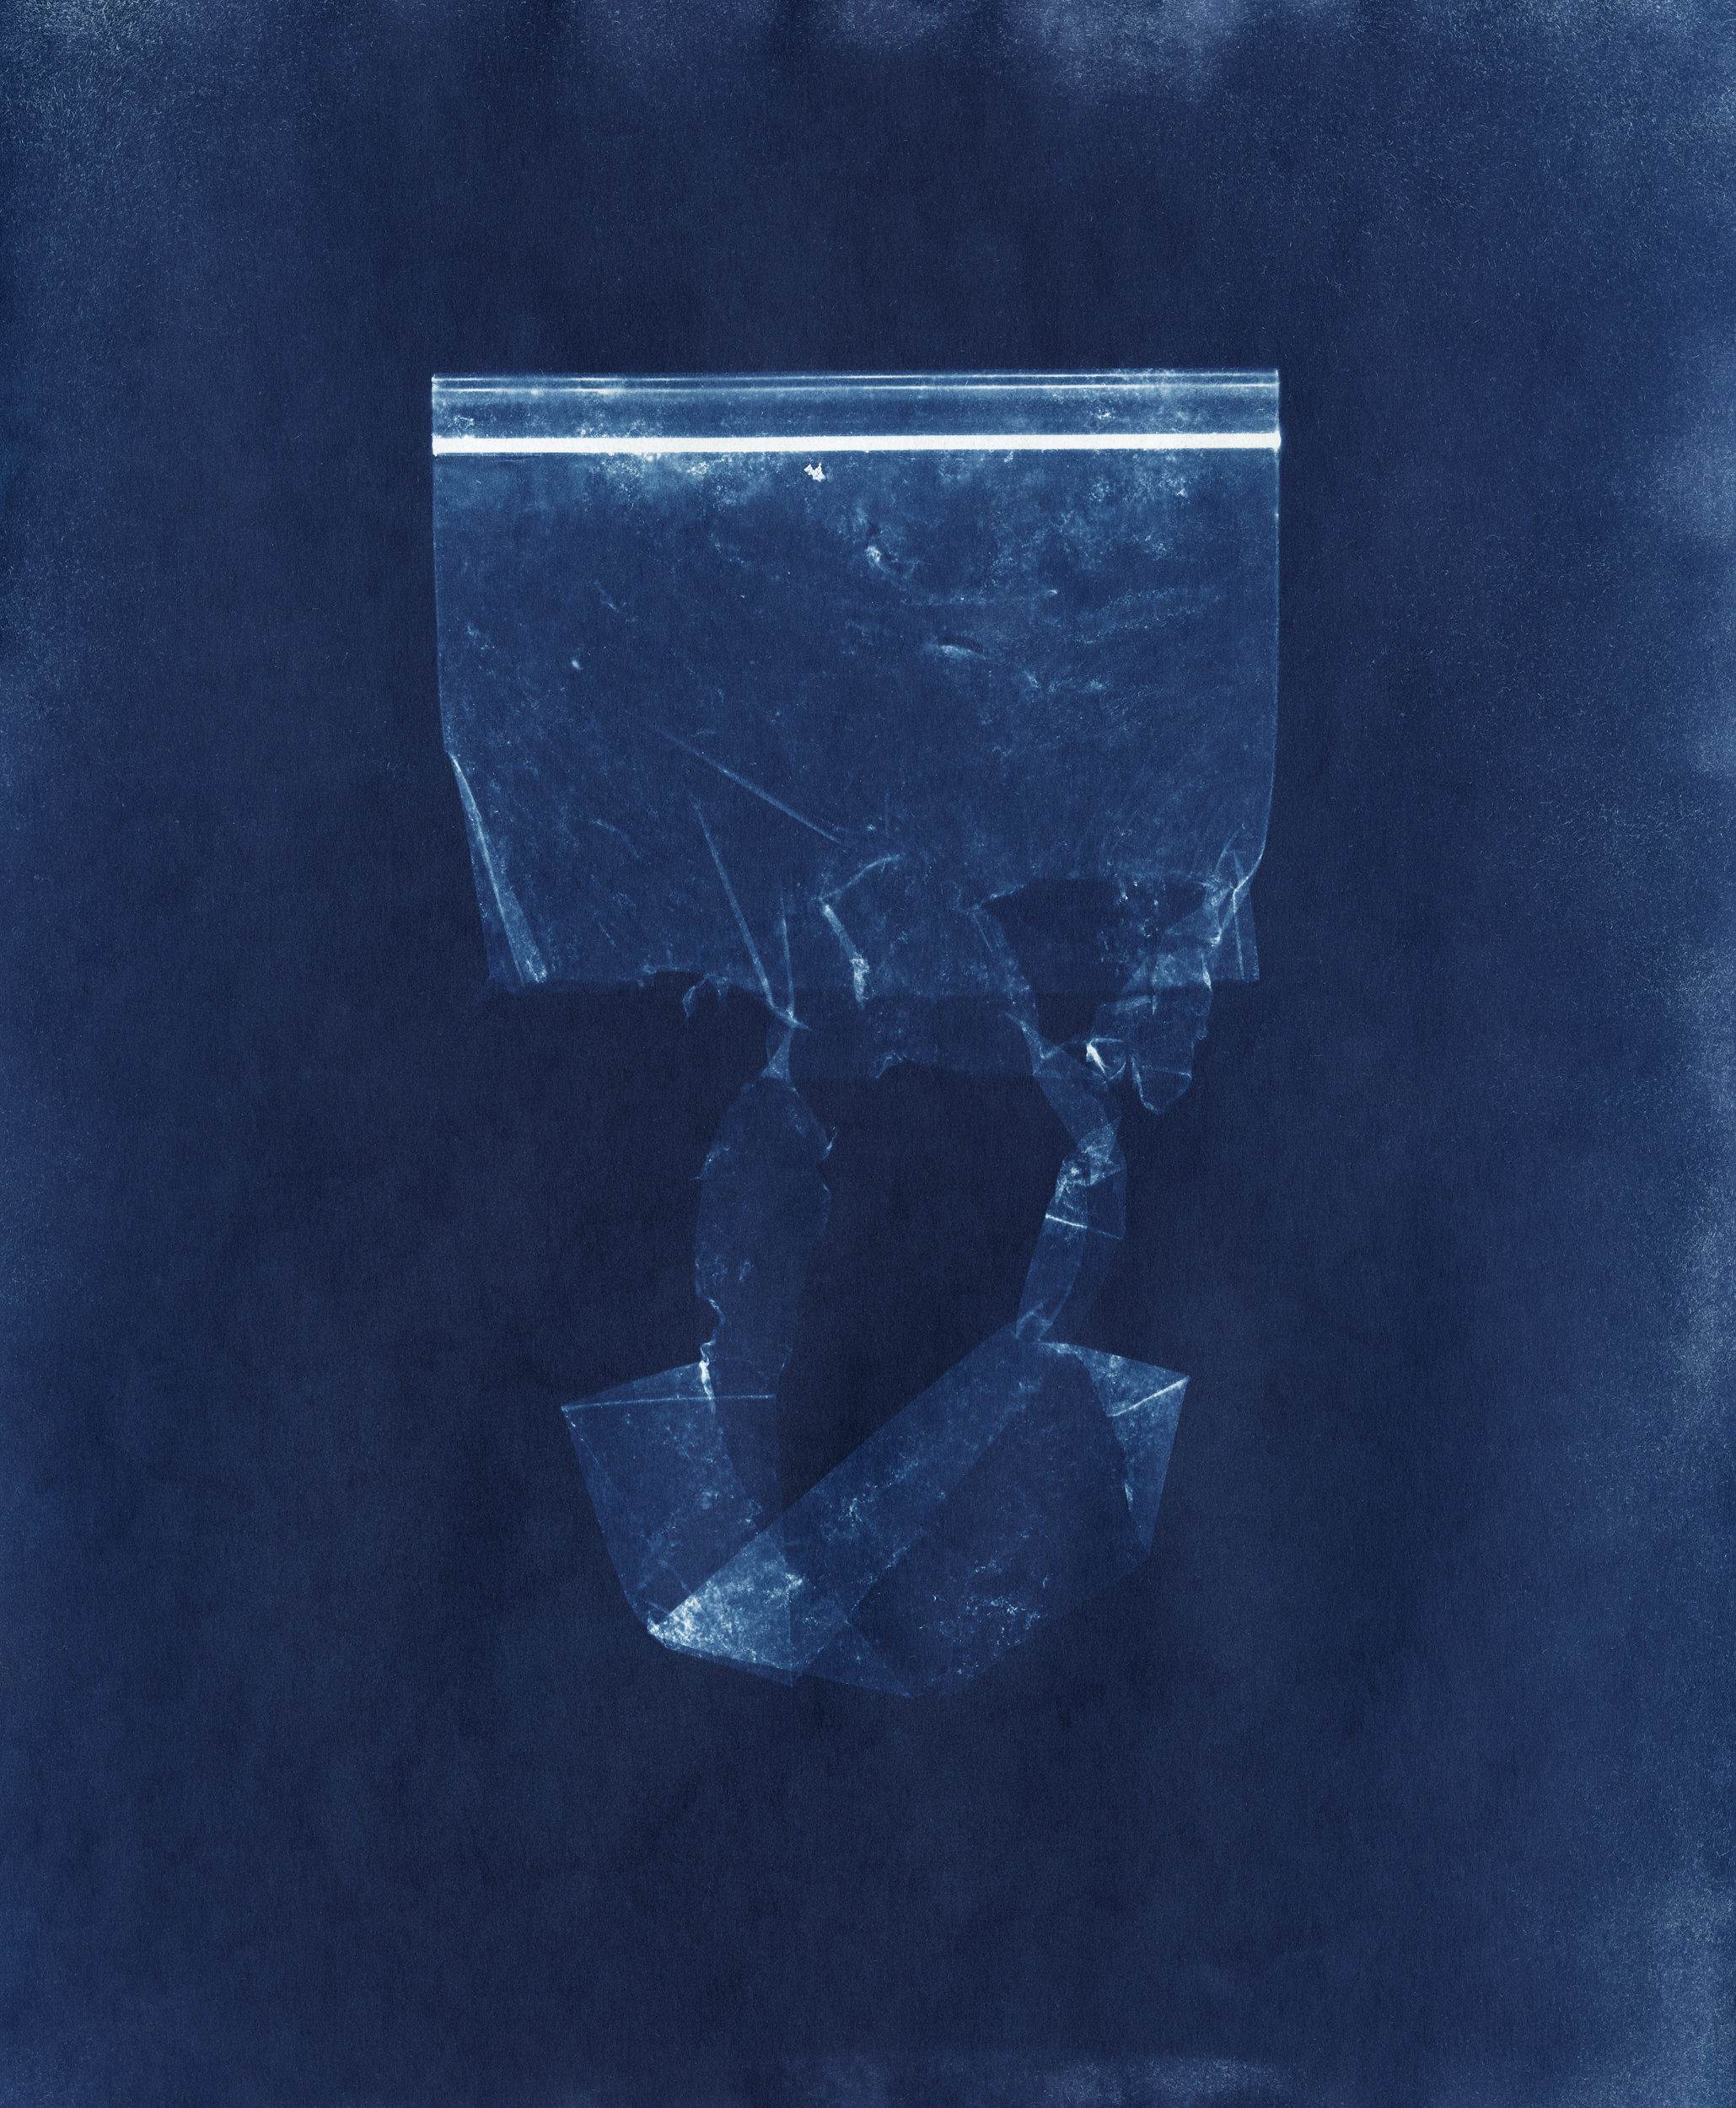 Ellenwood_Cyanotype_ (3).jpg